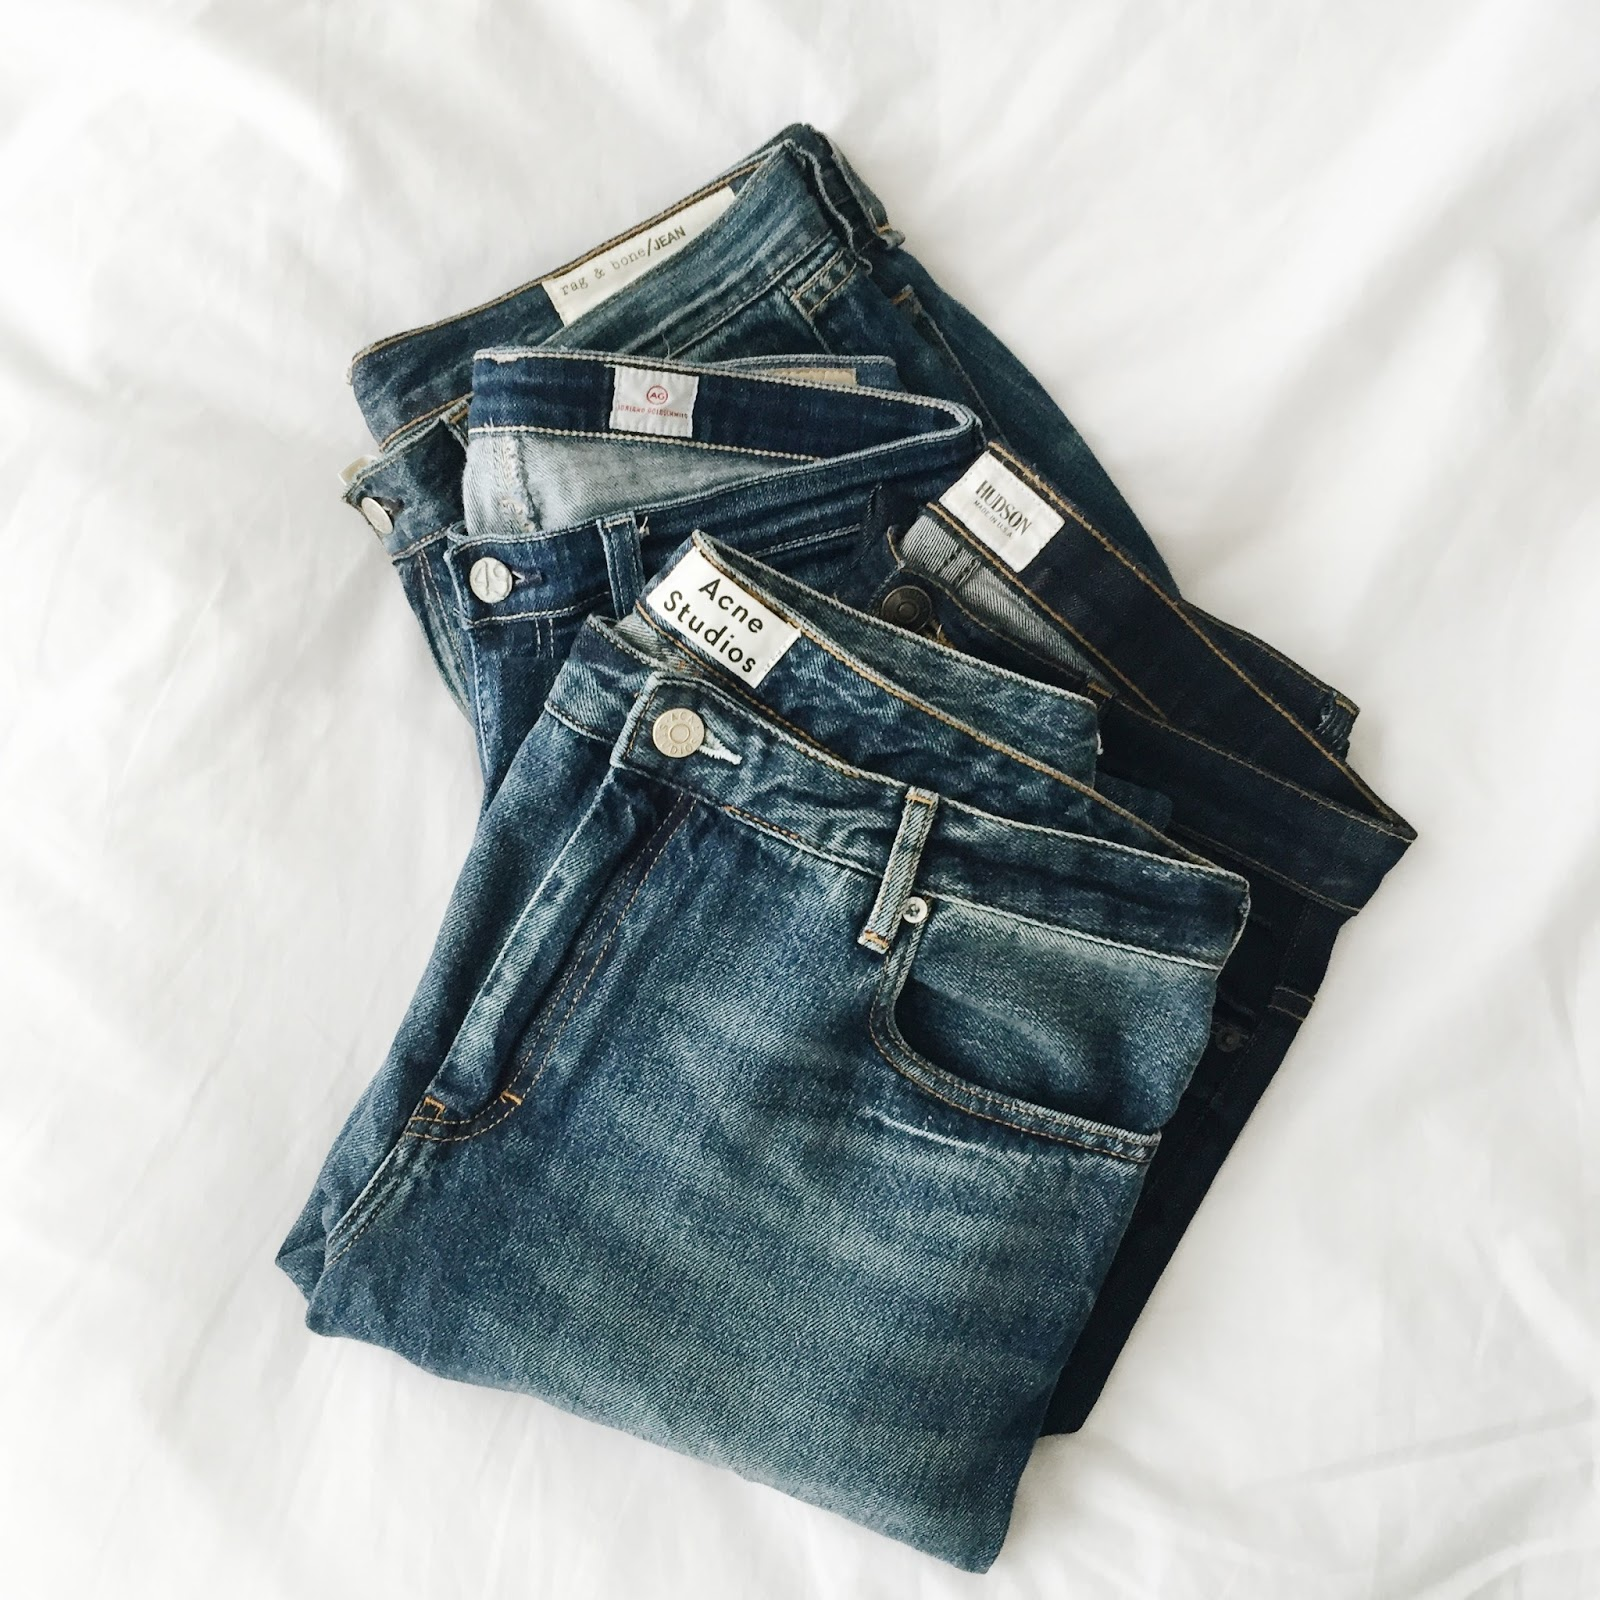 737cbeff4e42 Buy these jeans on my Depop!